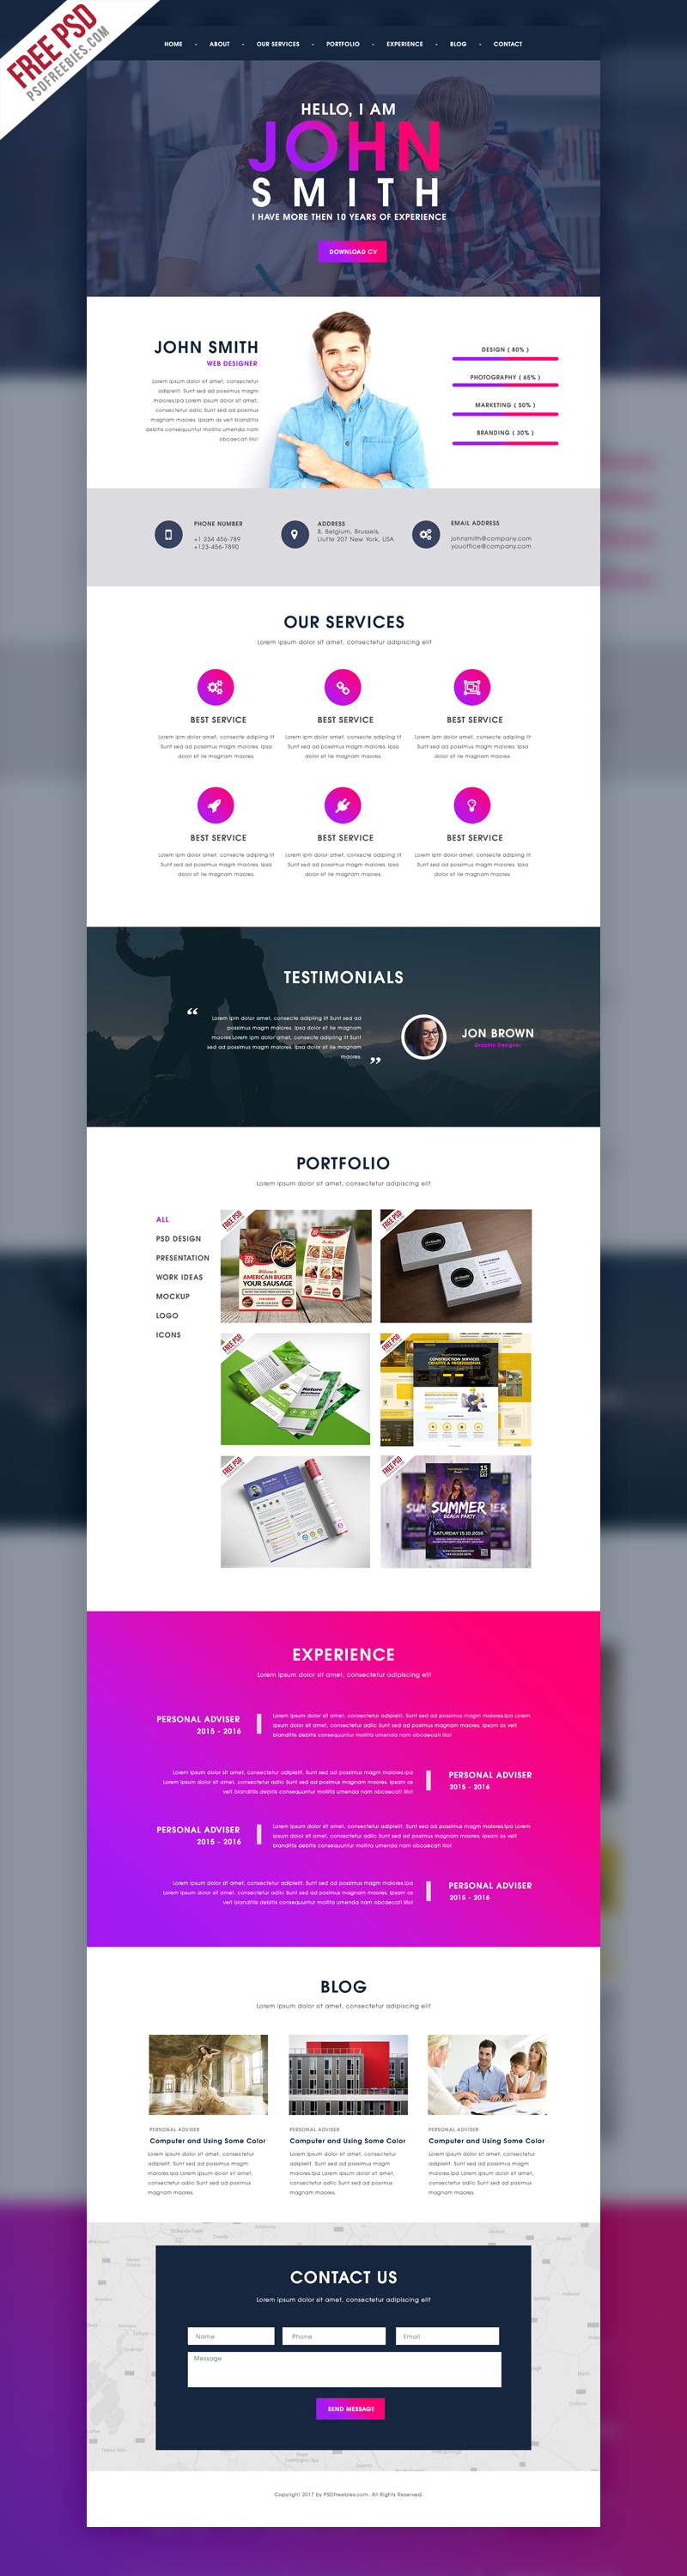 Creative One Page Portfolio Website Template Free PSD